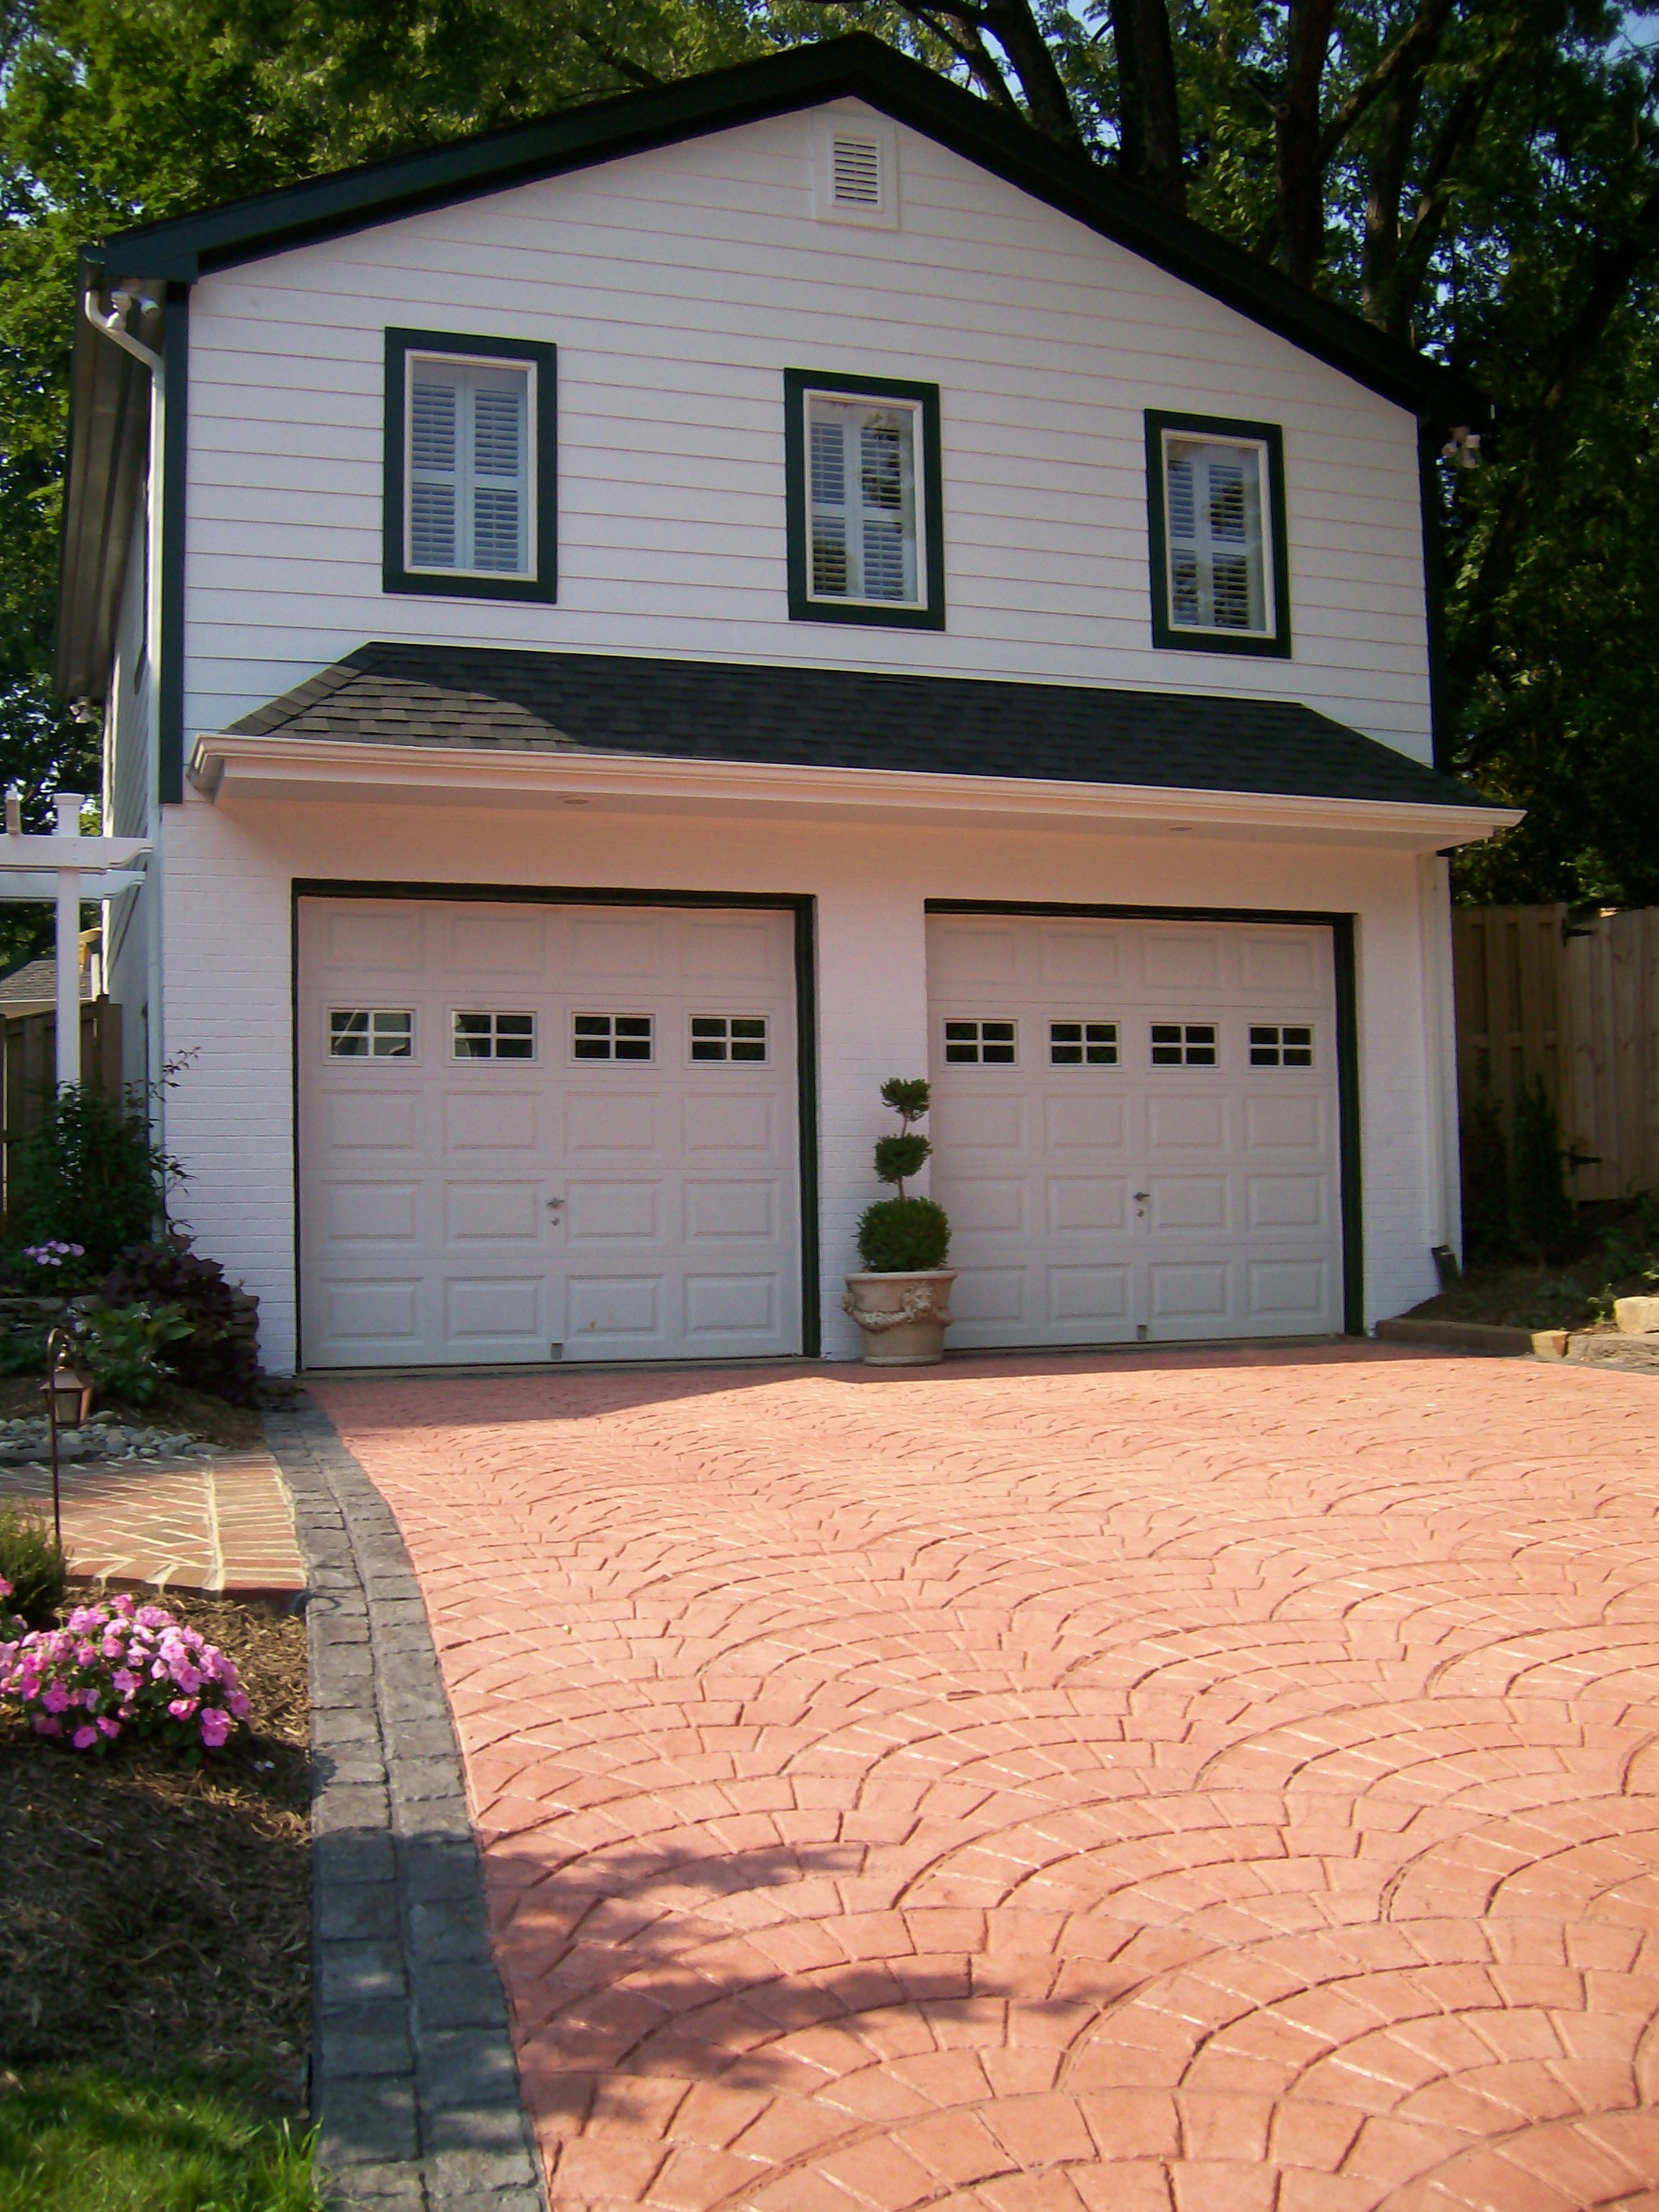 Custom Wooden Garage Doors For Two Car Garage (Image 13 of 38)